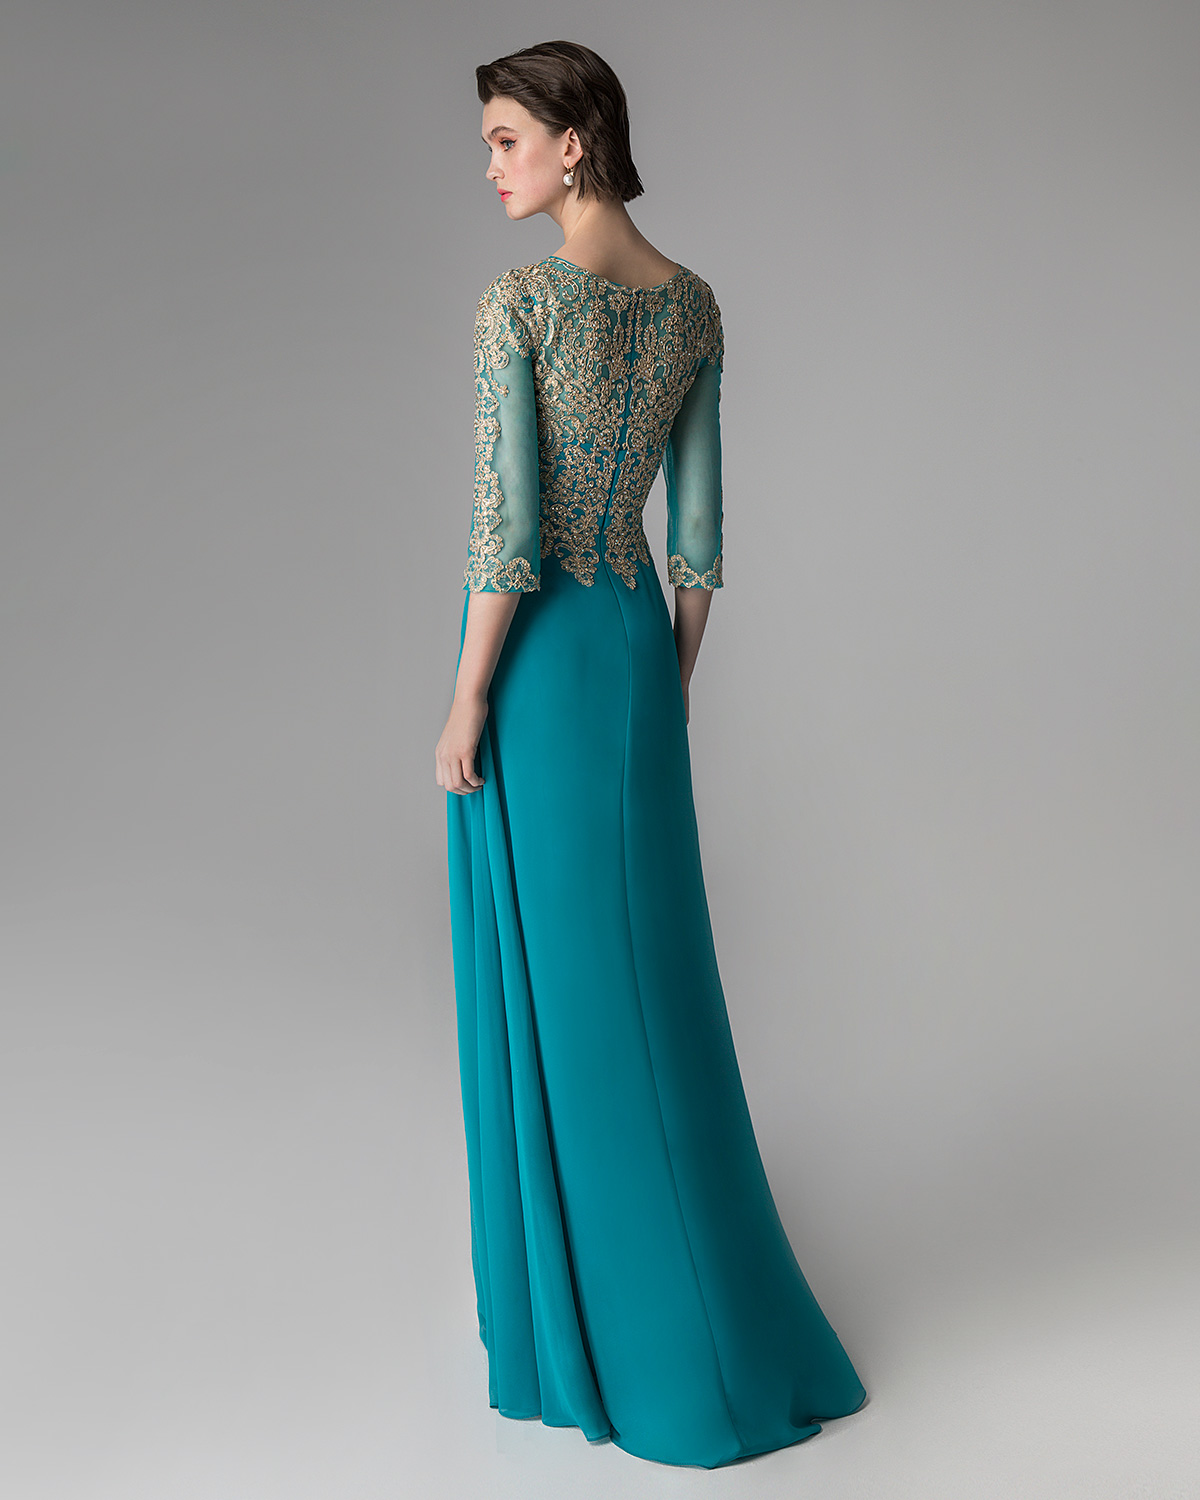 Classic Dresses / Long evening dress with beaded top and long sleeves